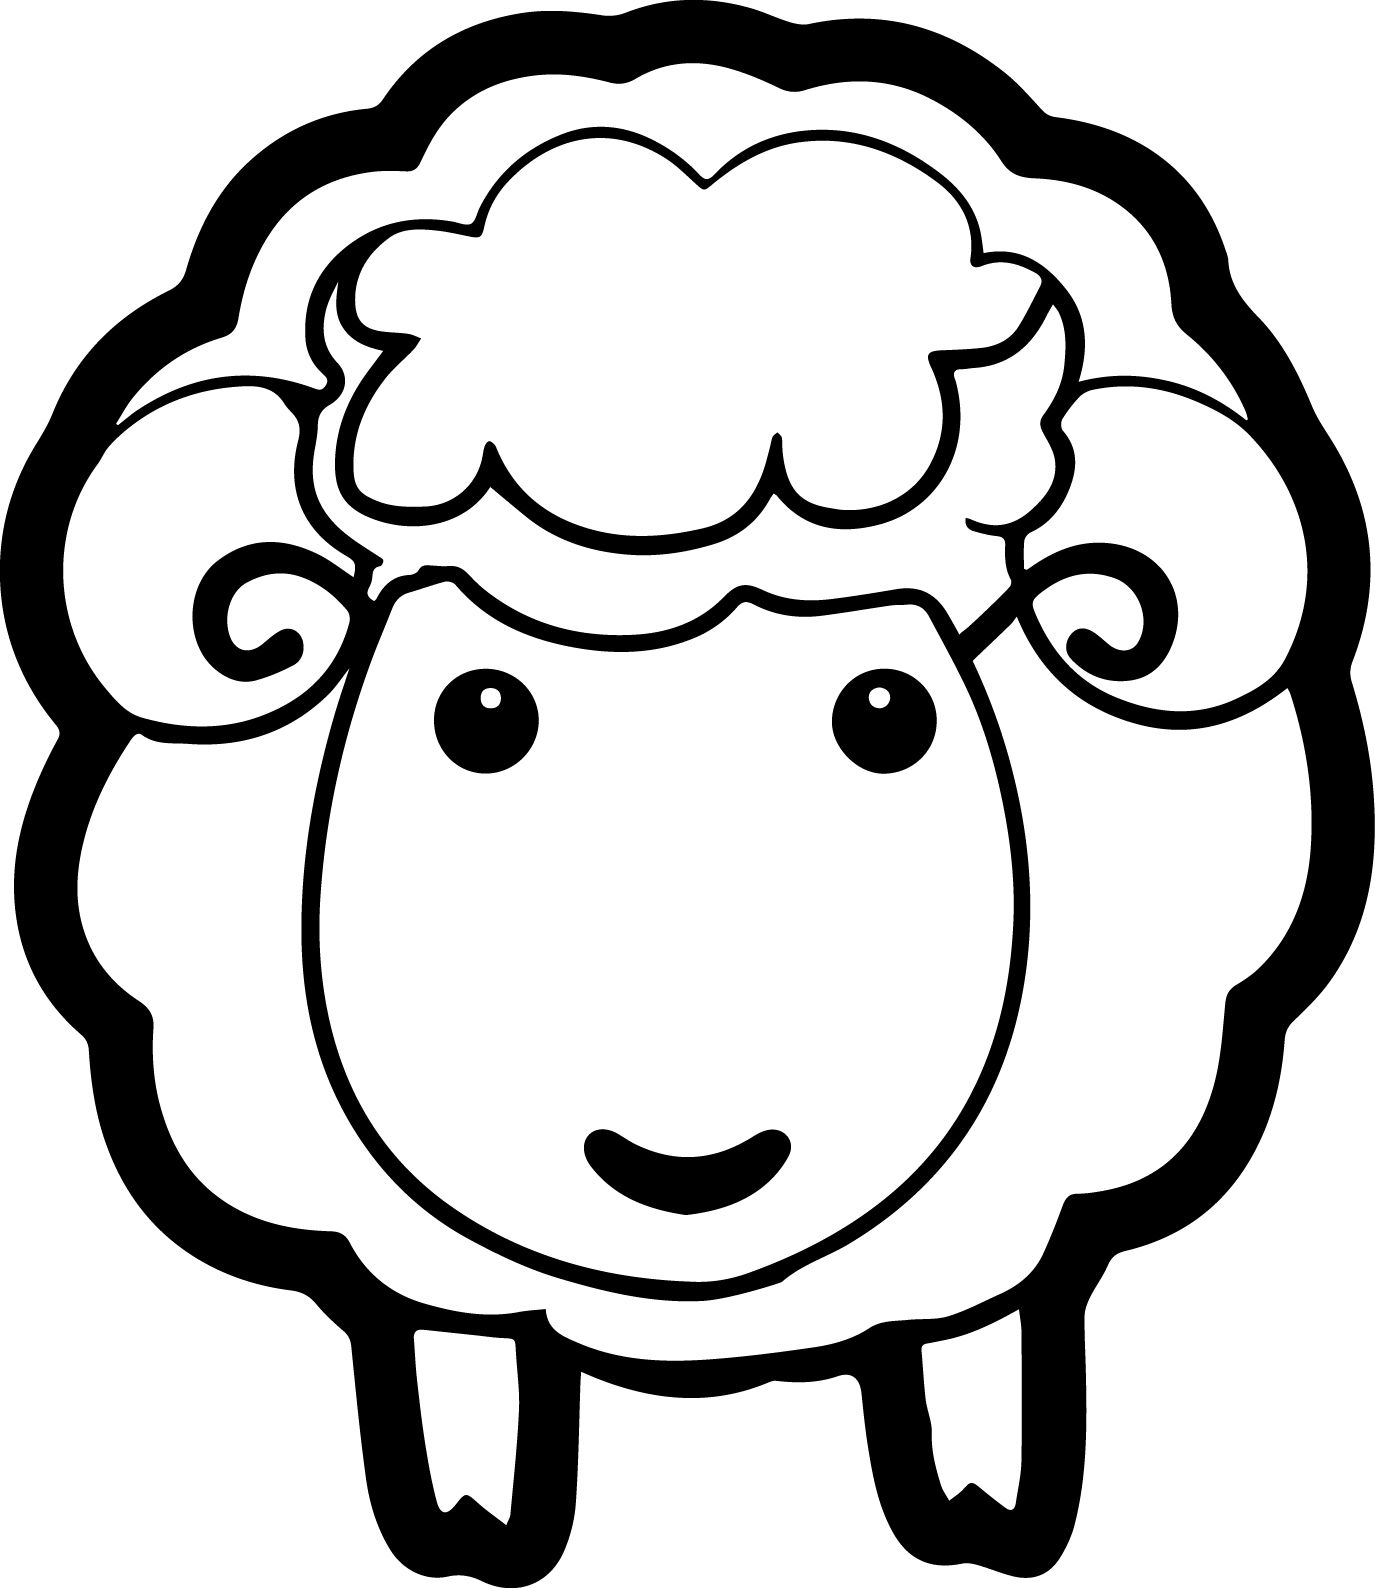 Sheep Coloring Page 06 Jpg Animal Coloring Pages Coloring Pages Sheep Outline